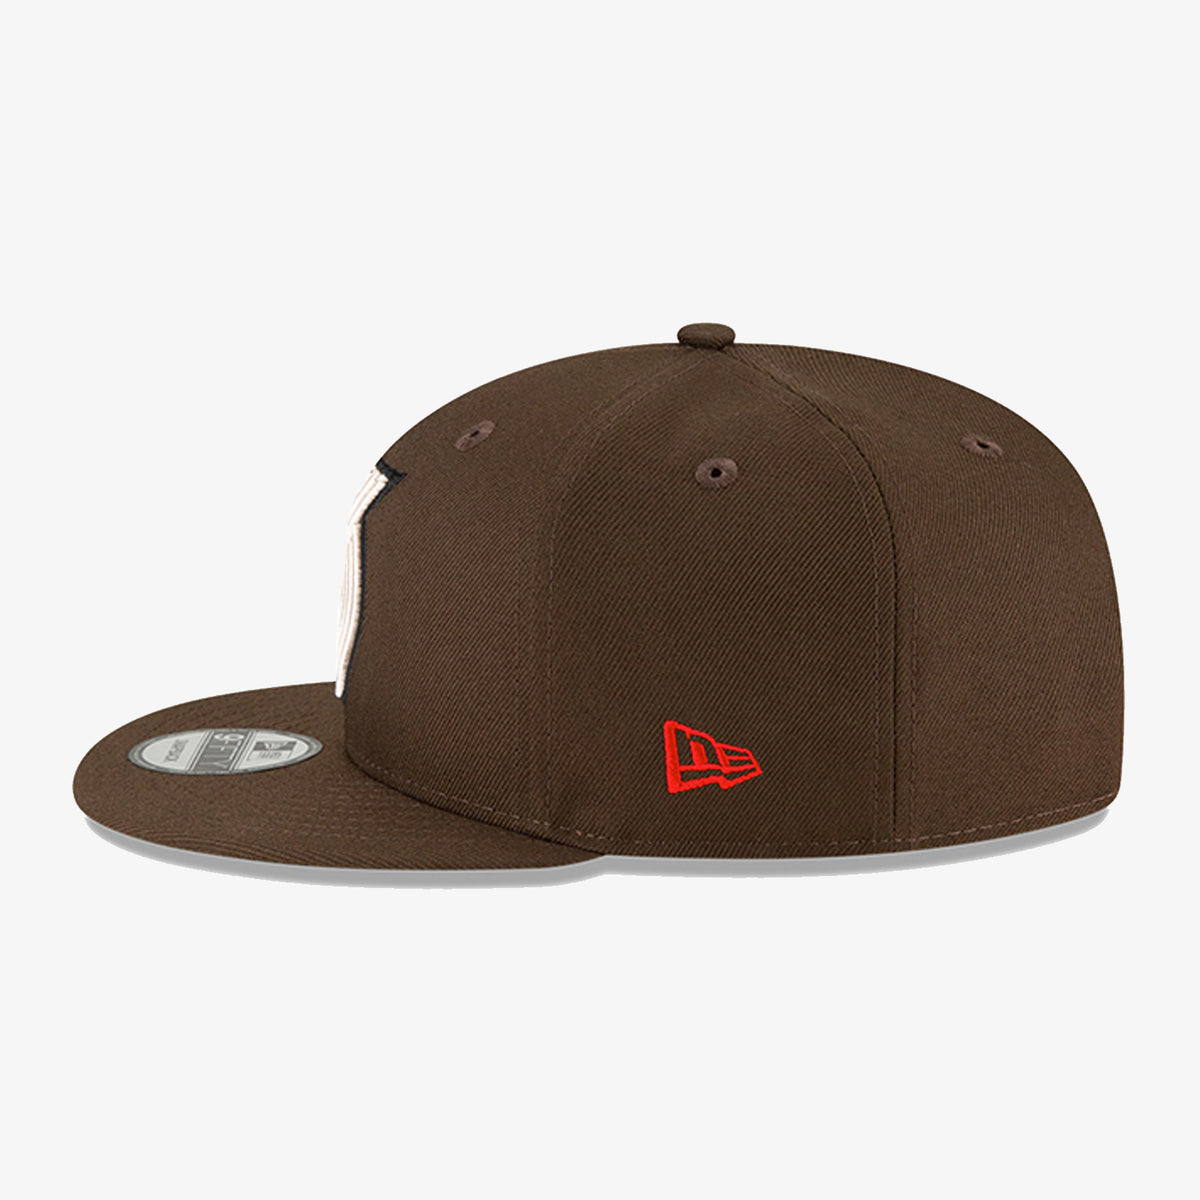 Portland Trailblazers City Edition 950 Snapback - Brown